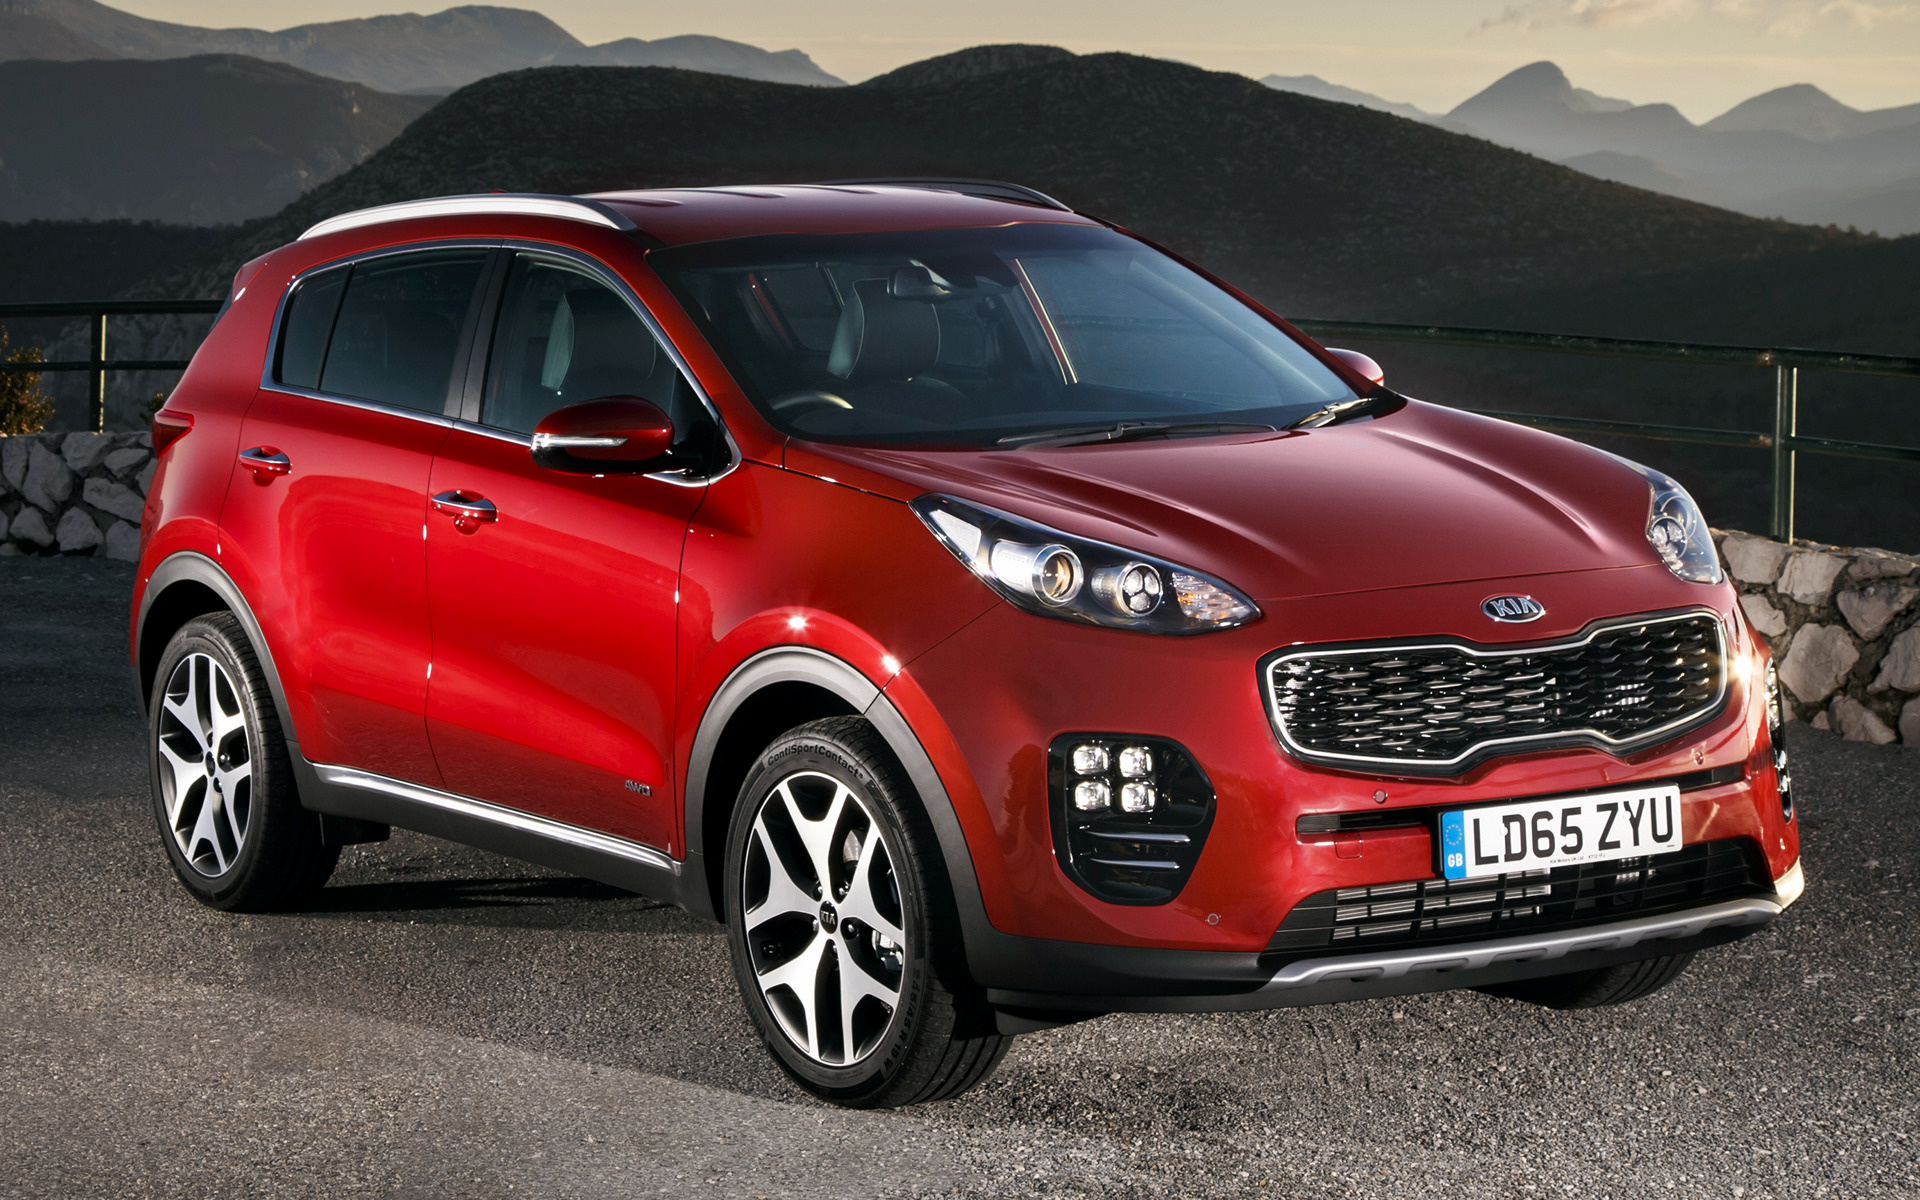 Uk sales august kia motors ahead with its best ever august sales month with nearly 4 000 cars sold